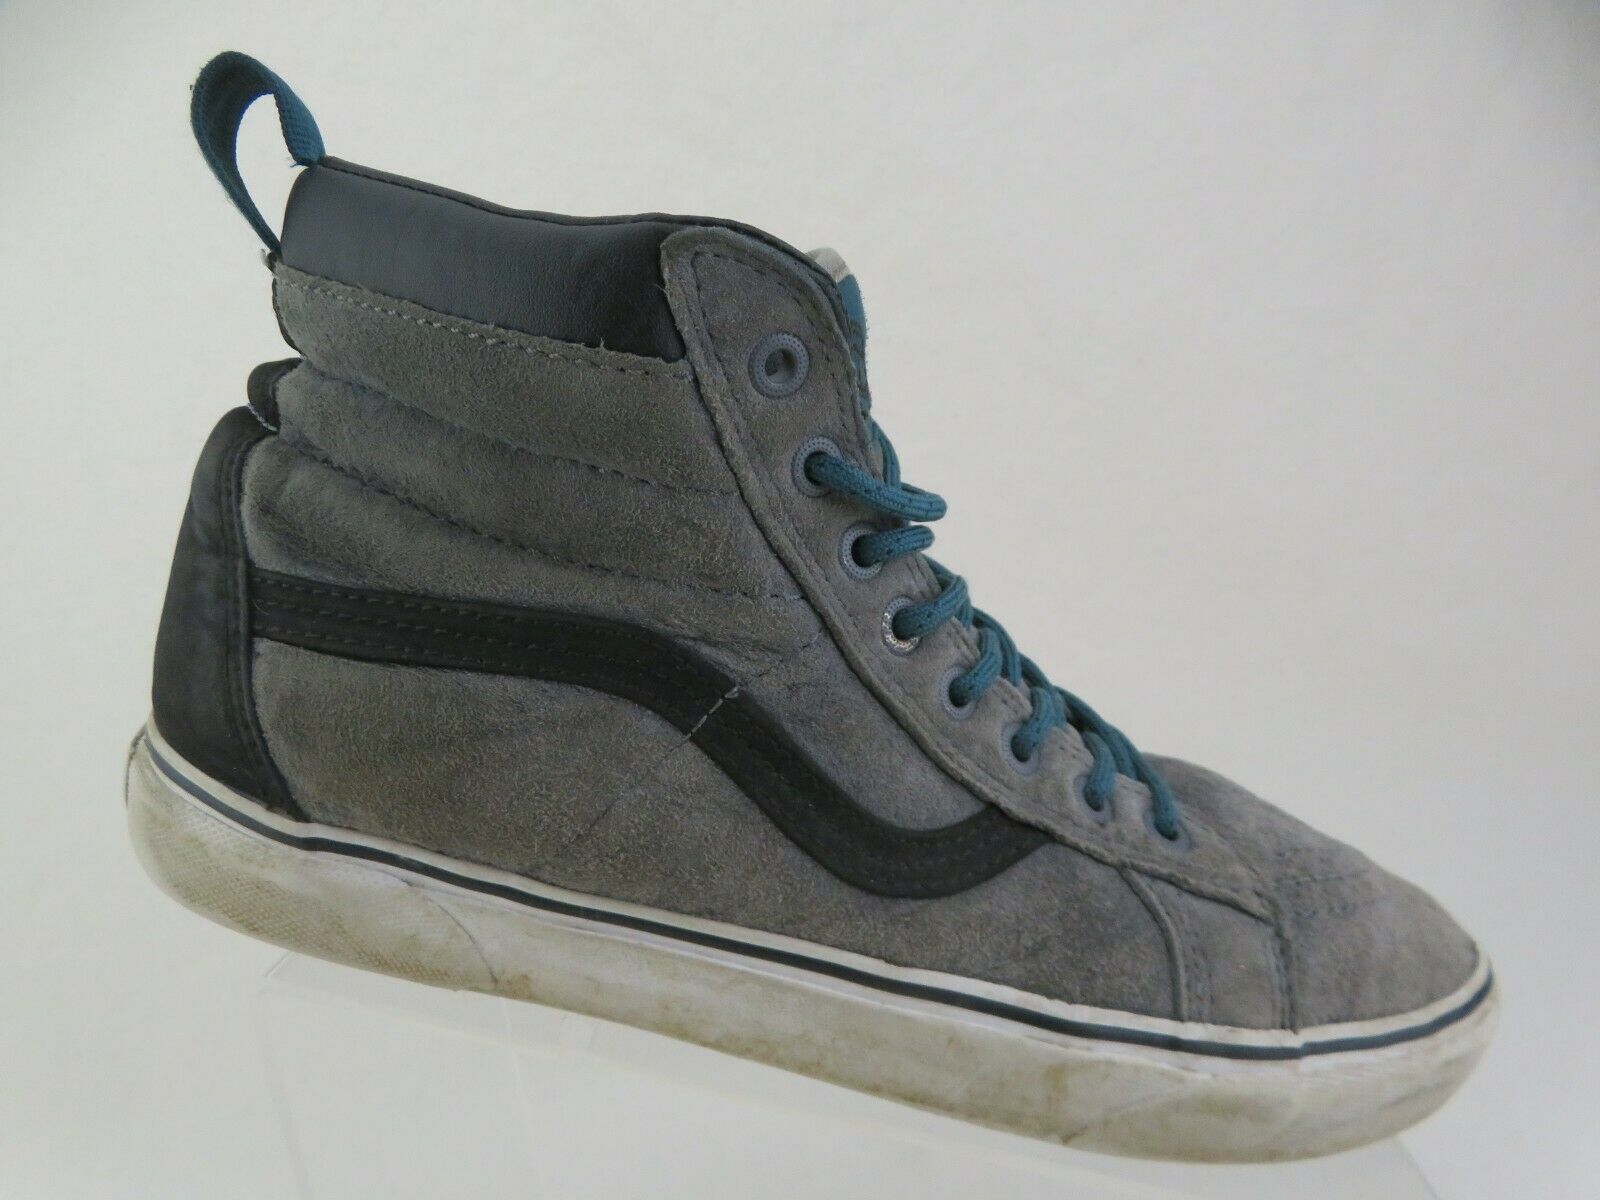 VANS Sk8Hi Suede Grey Sz 105 Men HighTop Skateboarding Shoes 3149